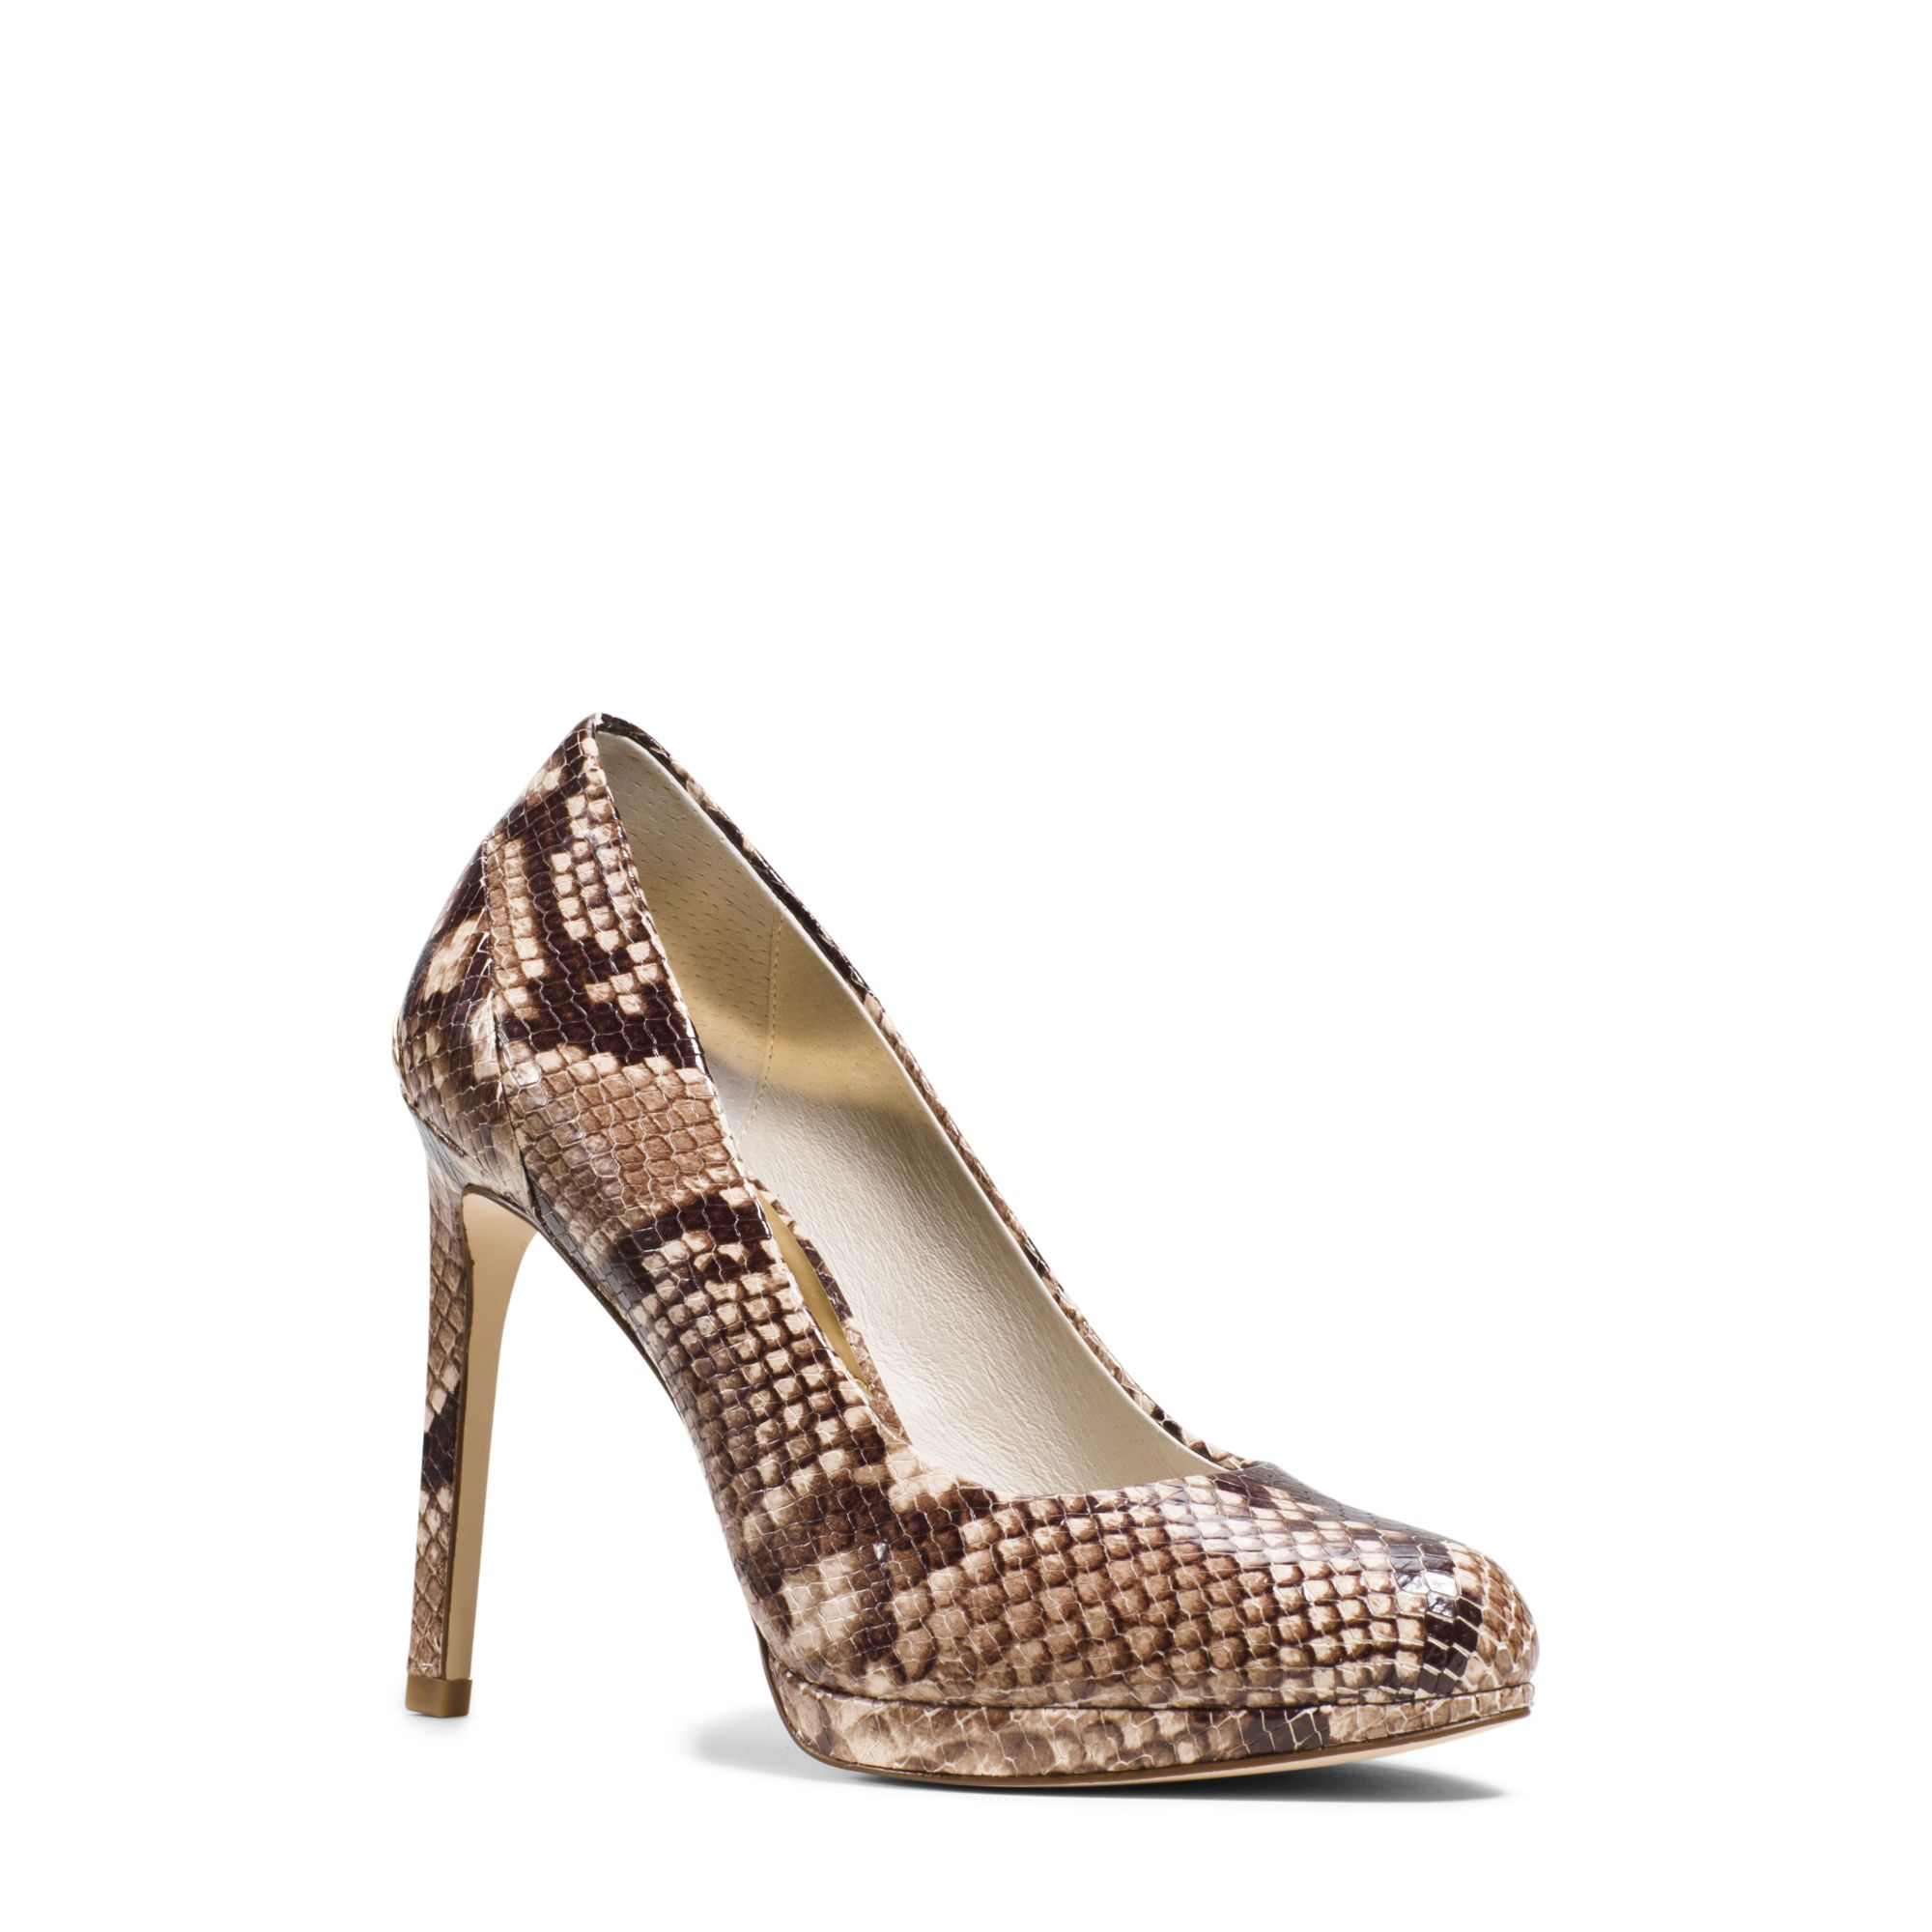 a9006b61bf10 Lyst - Michael Kors Yasmin Embossed-leather Pump in Natural